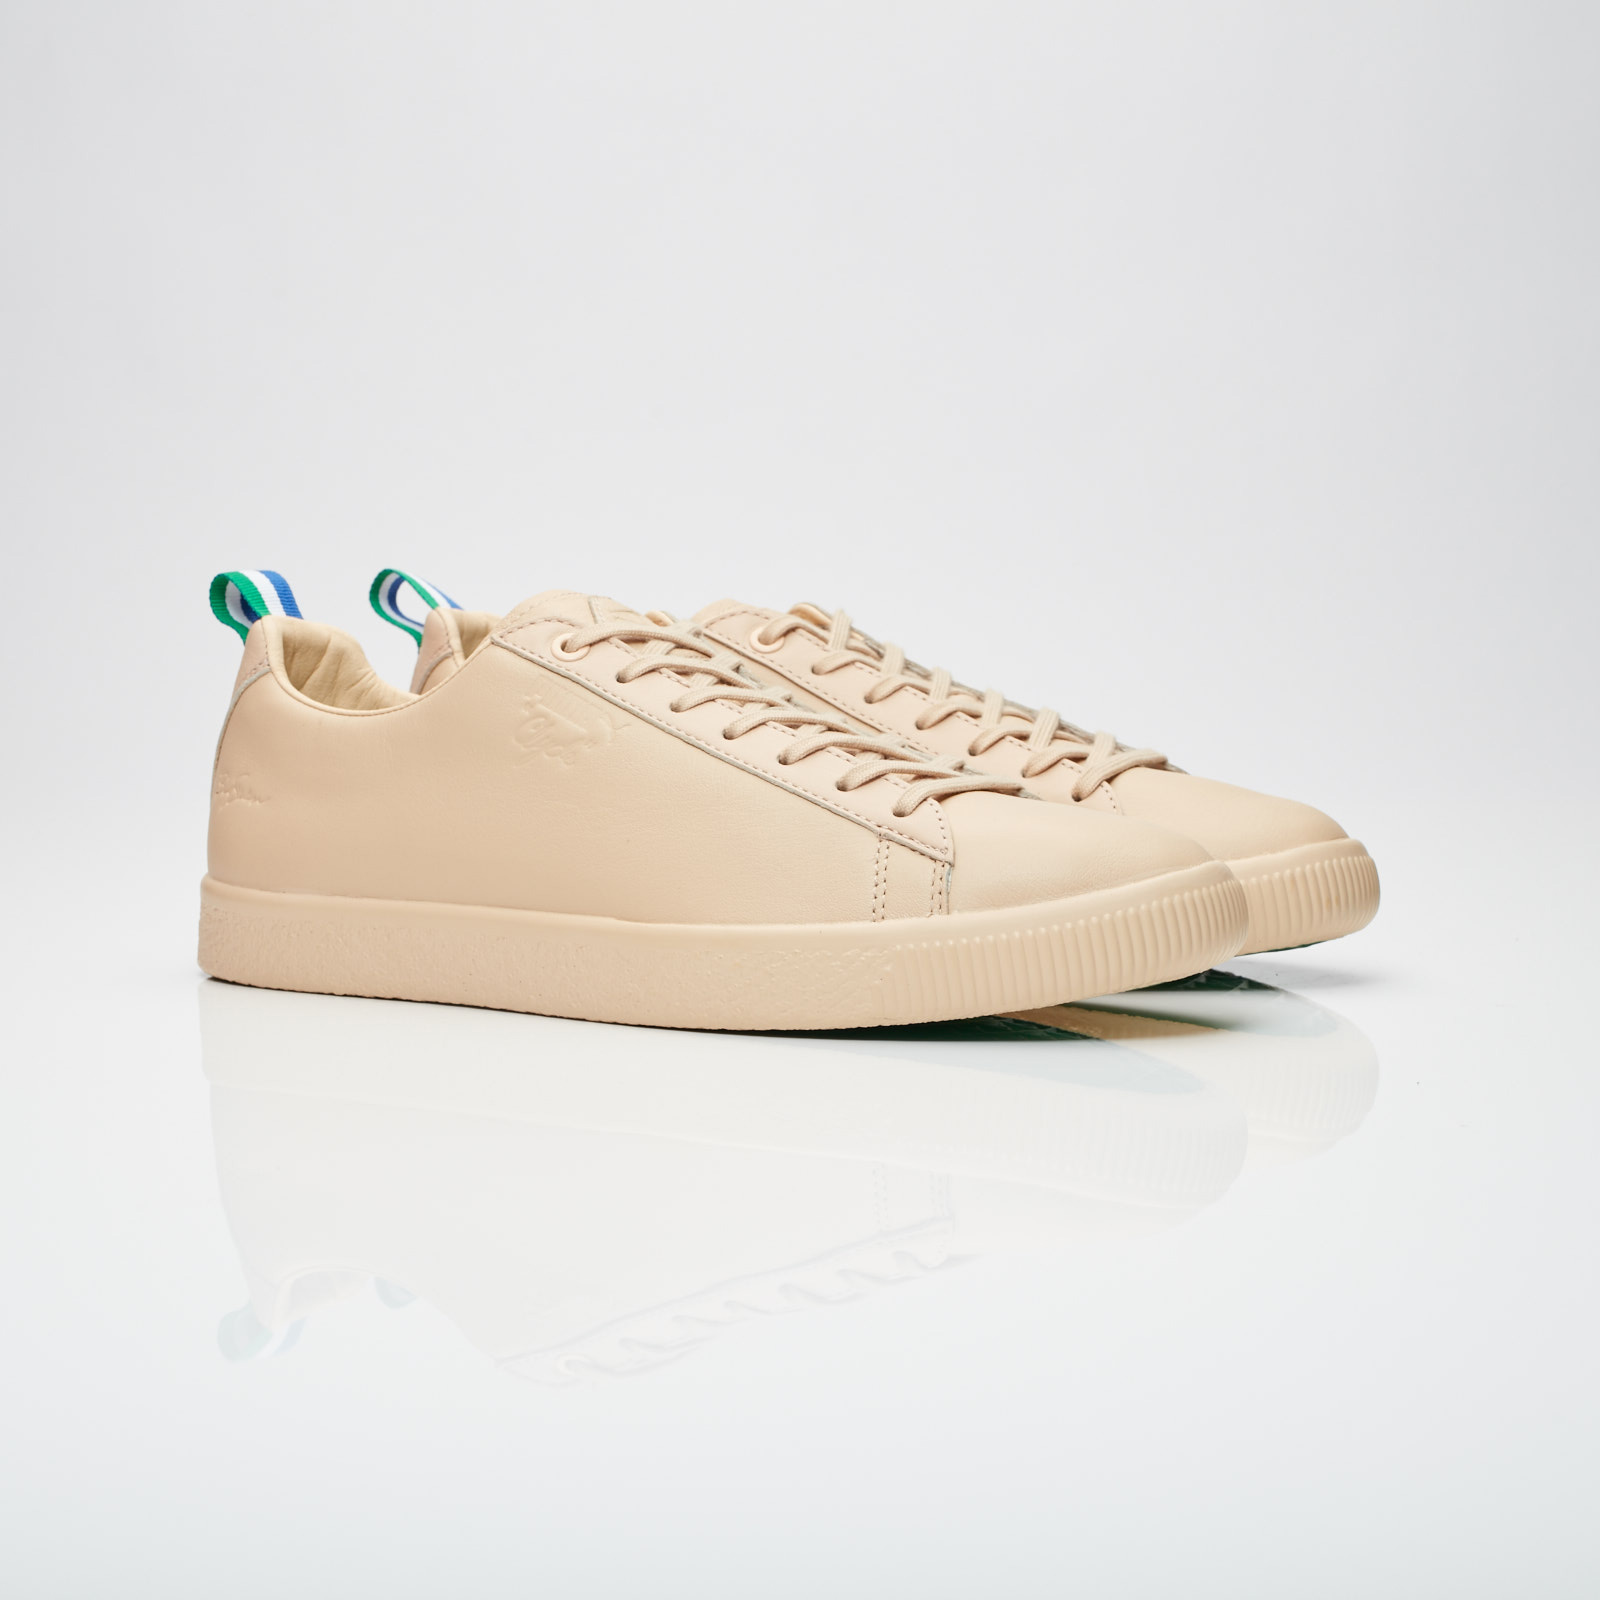 outlet store 22a26 7c124 Puma Clyde Big Sean - 366253-01 - Sneakersnstuff | sneakers ...